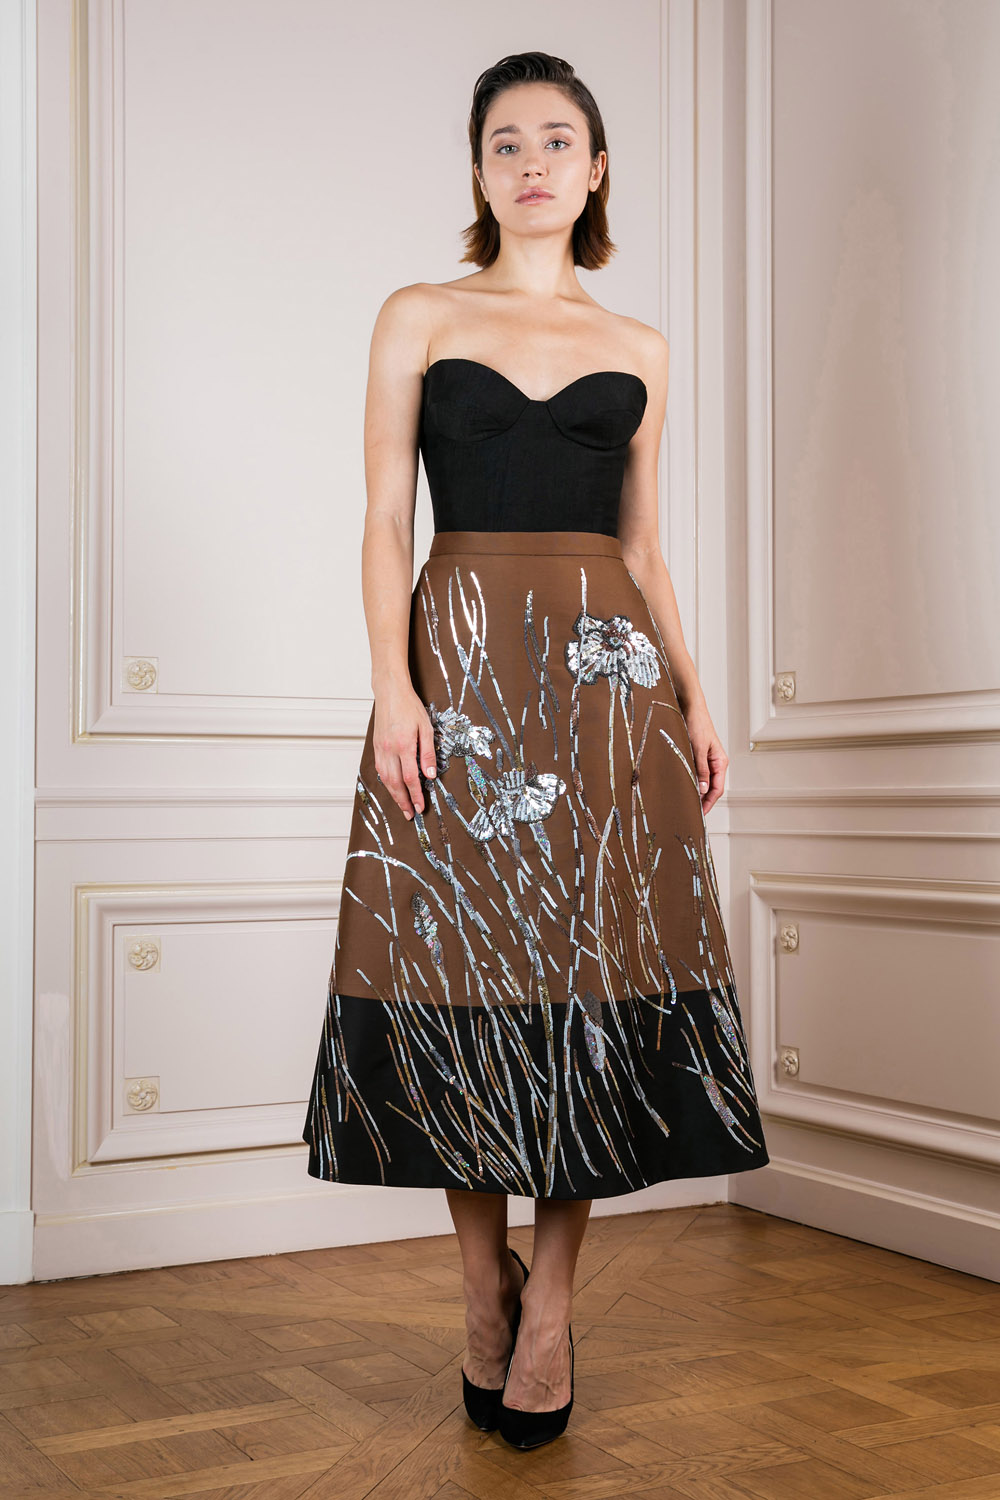 A-line skirt with silver flower embroidery